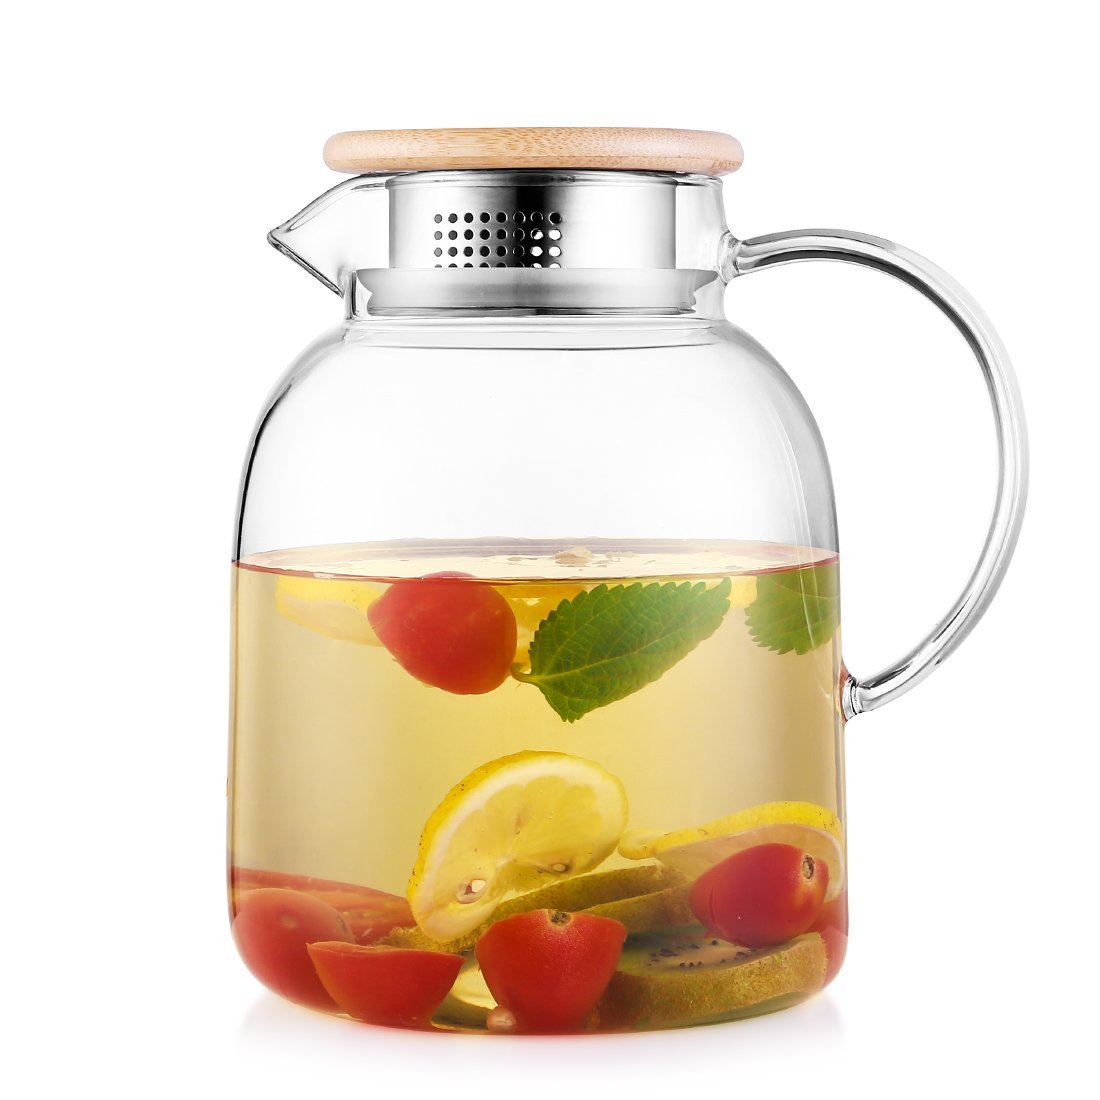 RED MAISON 68 Ounces Large Capacity Borosilicate Glass Water Pitcher with Lid, Glass Water Jug for Hot or Cold Water, Ice Tea and Juice Beverage (2000ml) (68oz with bamboo lid)